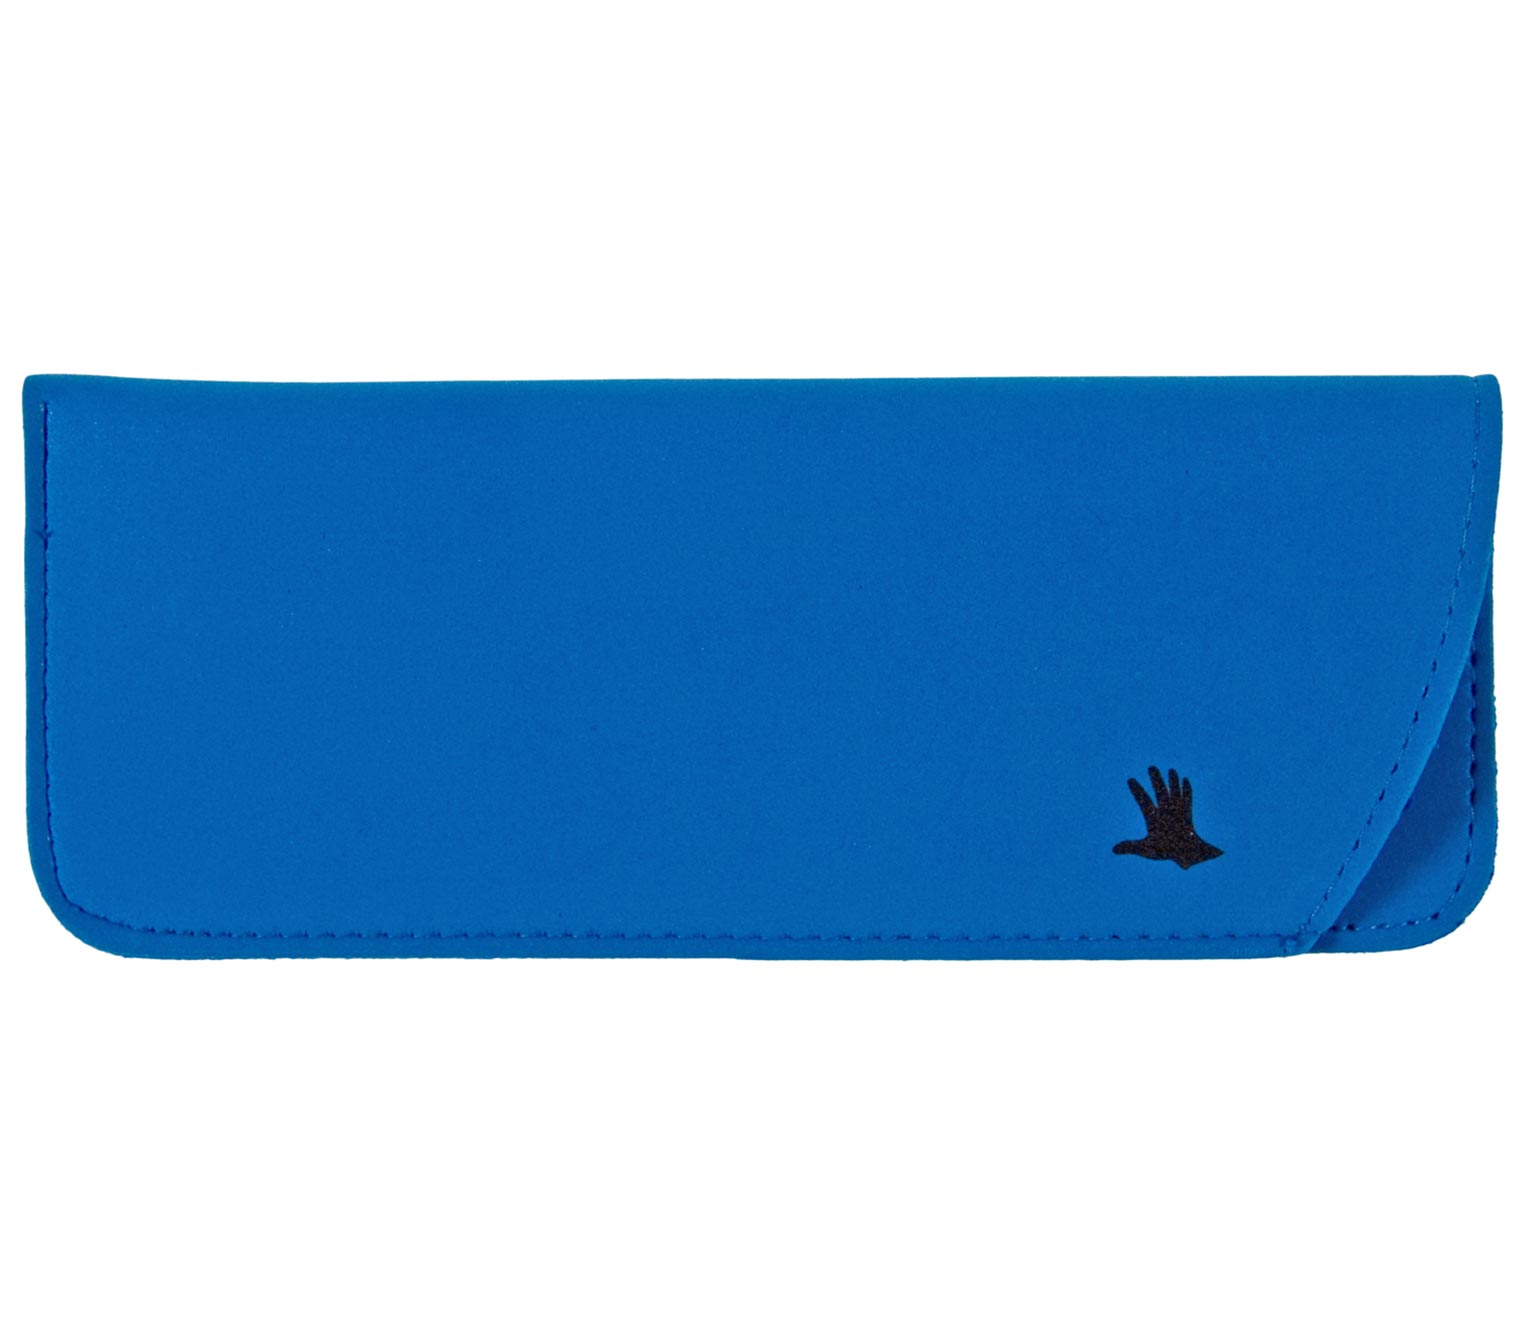 Case - London (Blue)